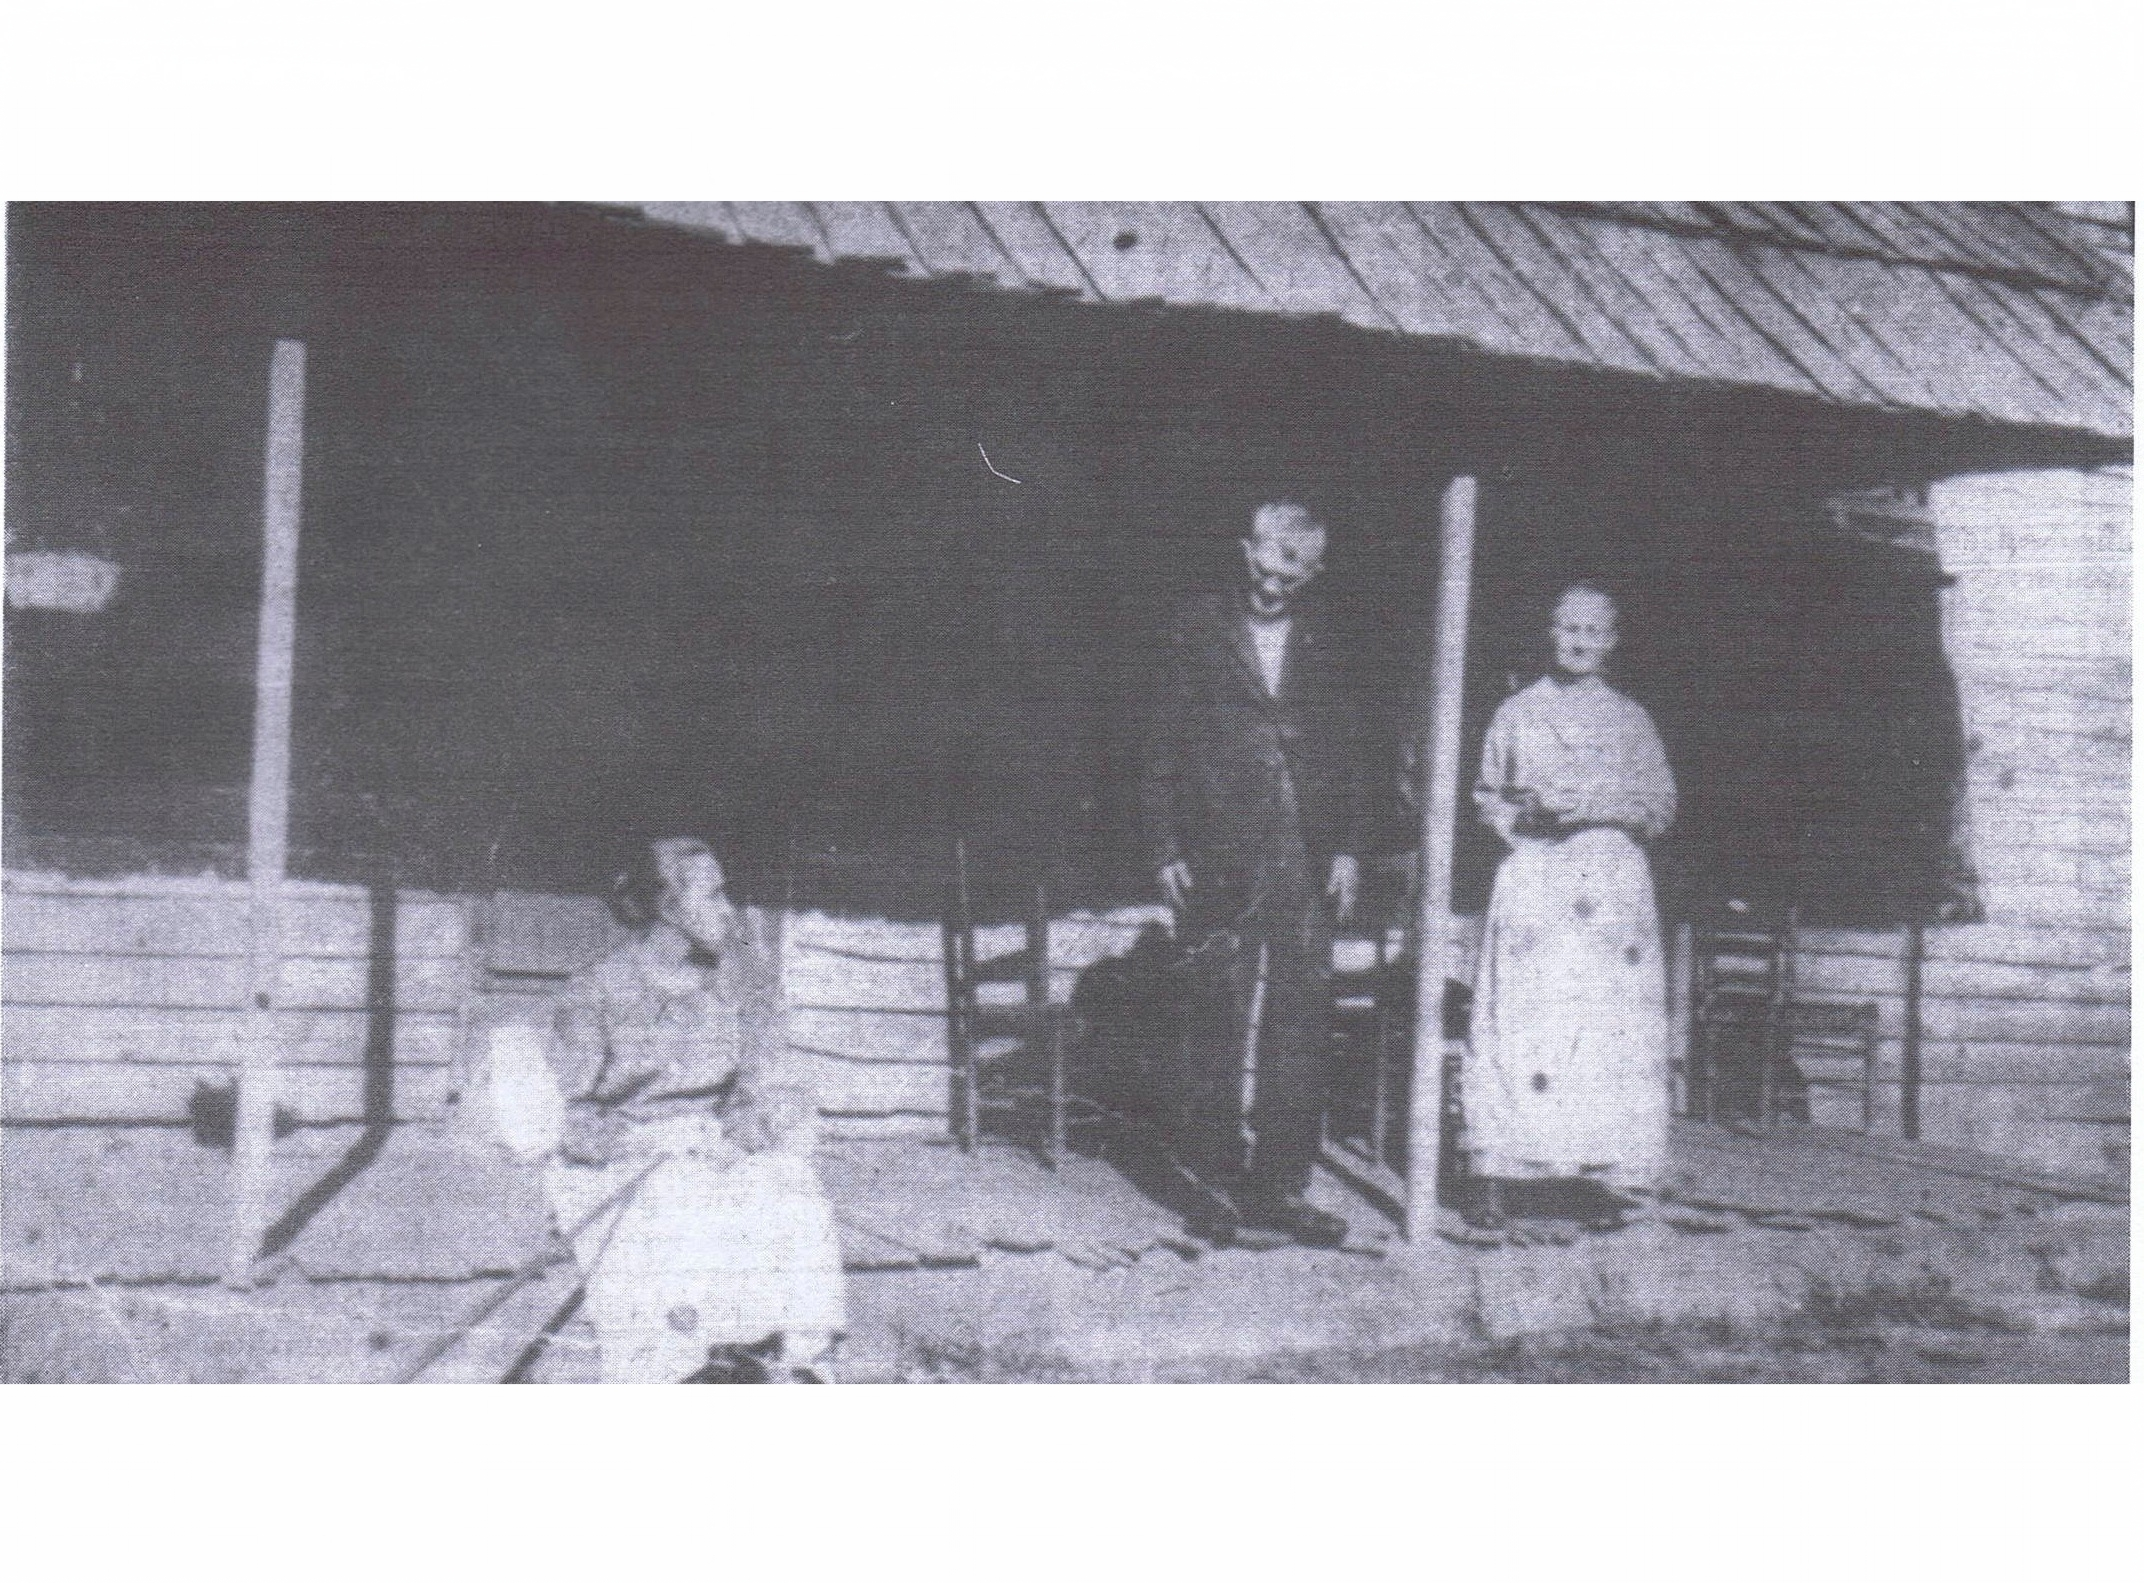 William Cassady (1836-1923), middle, with wife, Tamsey Jane Cassady (1839-1932), and their daughter, Julia Cassady (1863-1929), left.  According to the writings of Elmer Cassady, Tamsey was quite a marksman with a rifle and was no stranger to defending herself against large, living wildlife, including bears.  If permission is granted, I will share Elmer's complete account in a future post.  (Image shared from Elmer Cassady's writings.)